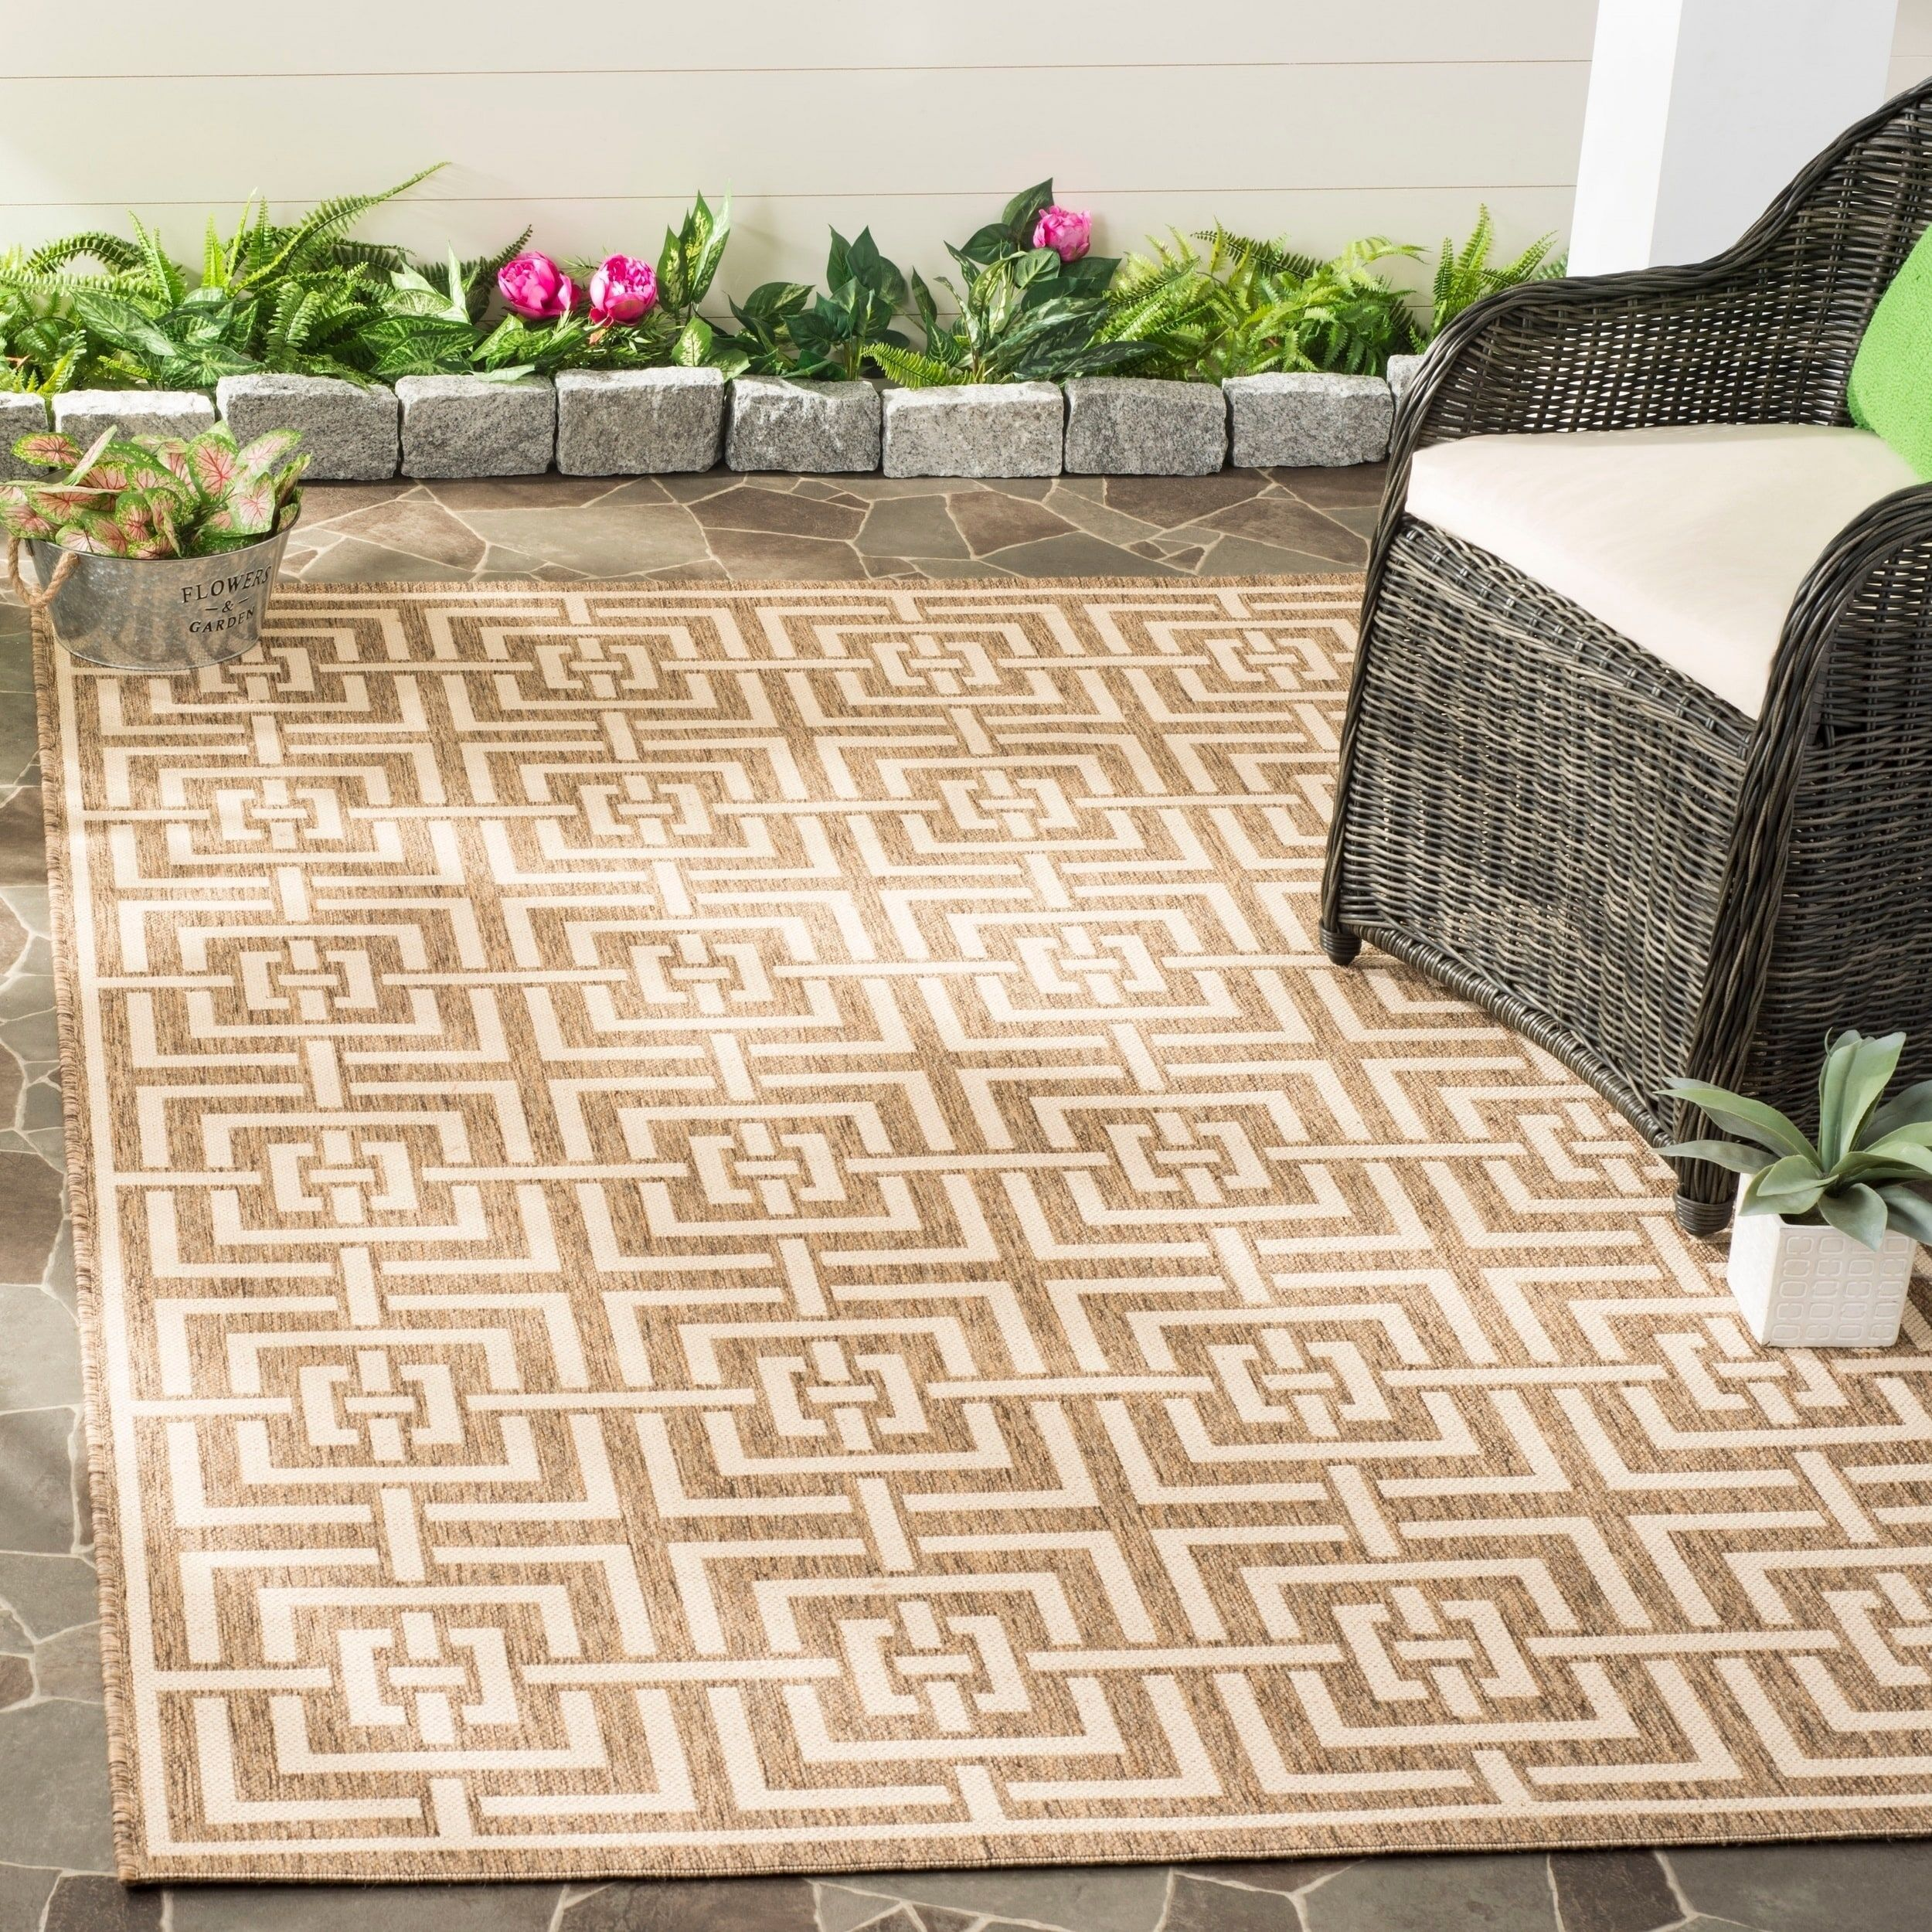 Safavieh Beach House Transitional Geometric Beige Cream Rug 8 X 10 Beige Cream 8 X 10 Indoor Outdoor Rugs Outdoor Rugs Patio